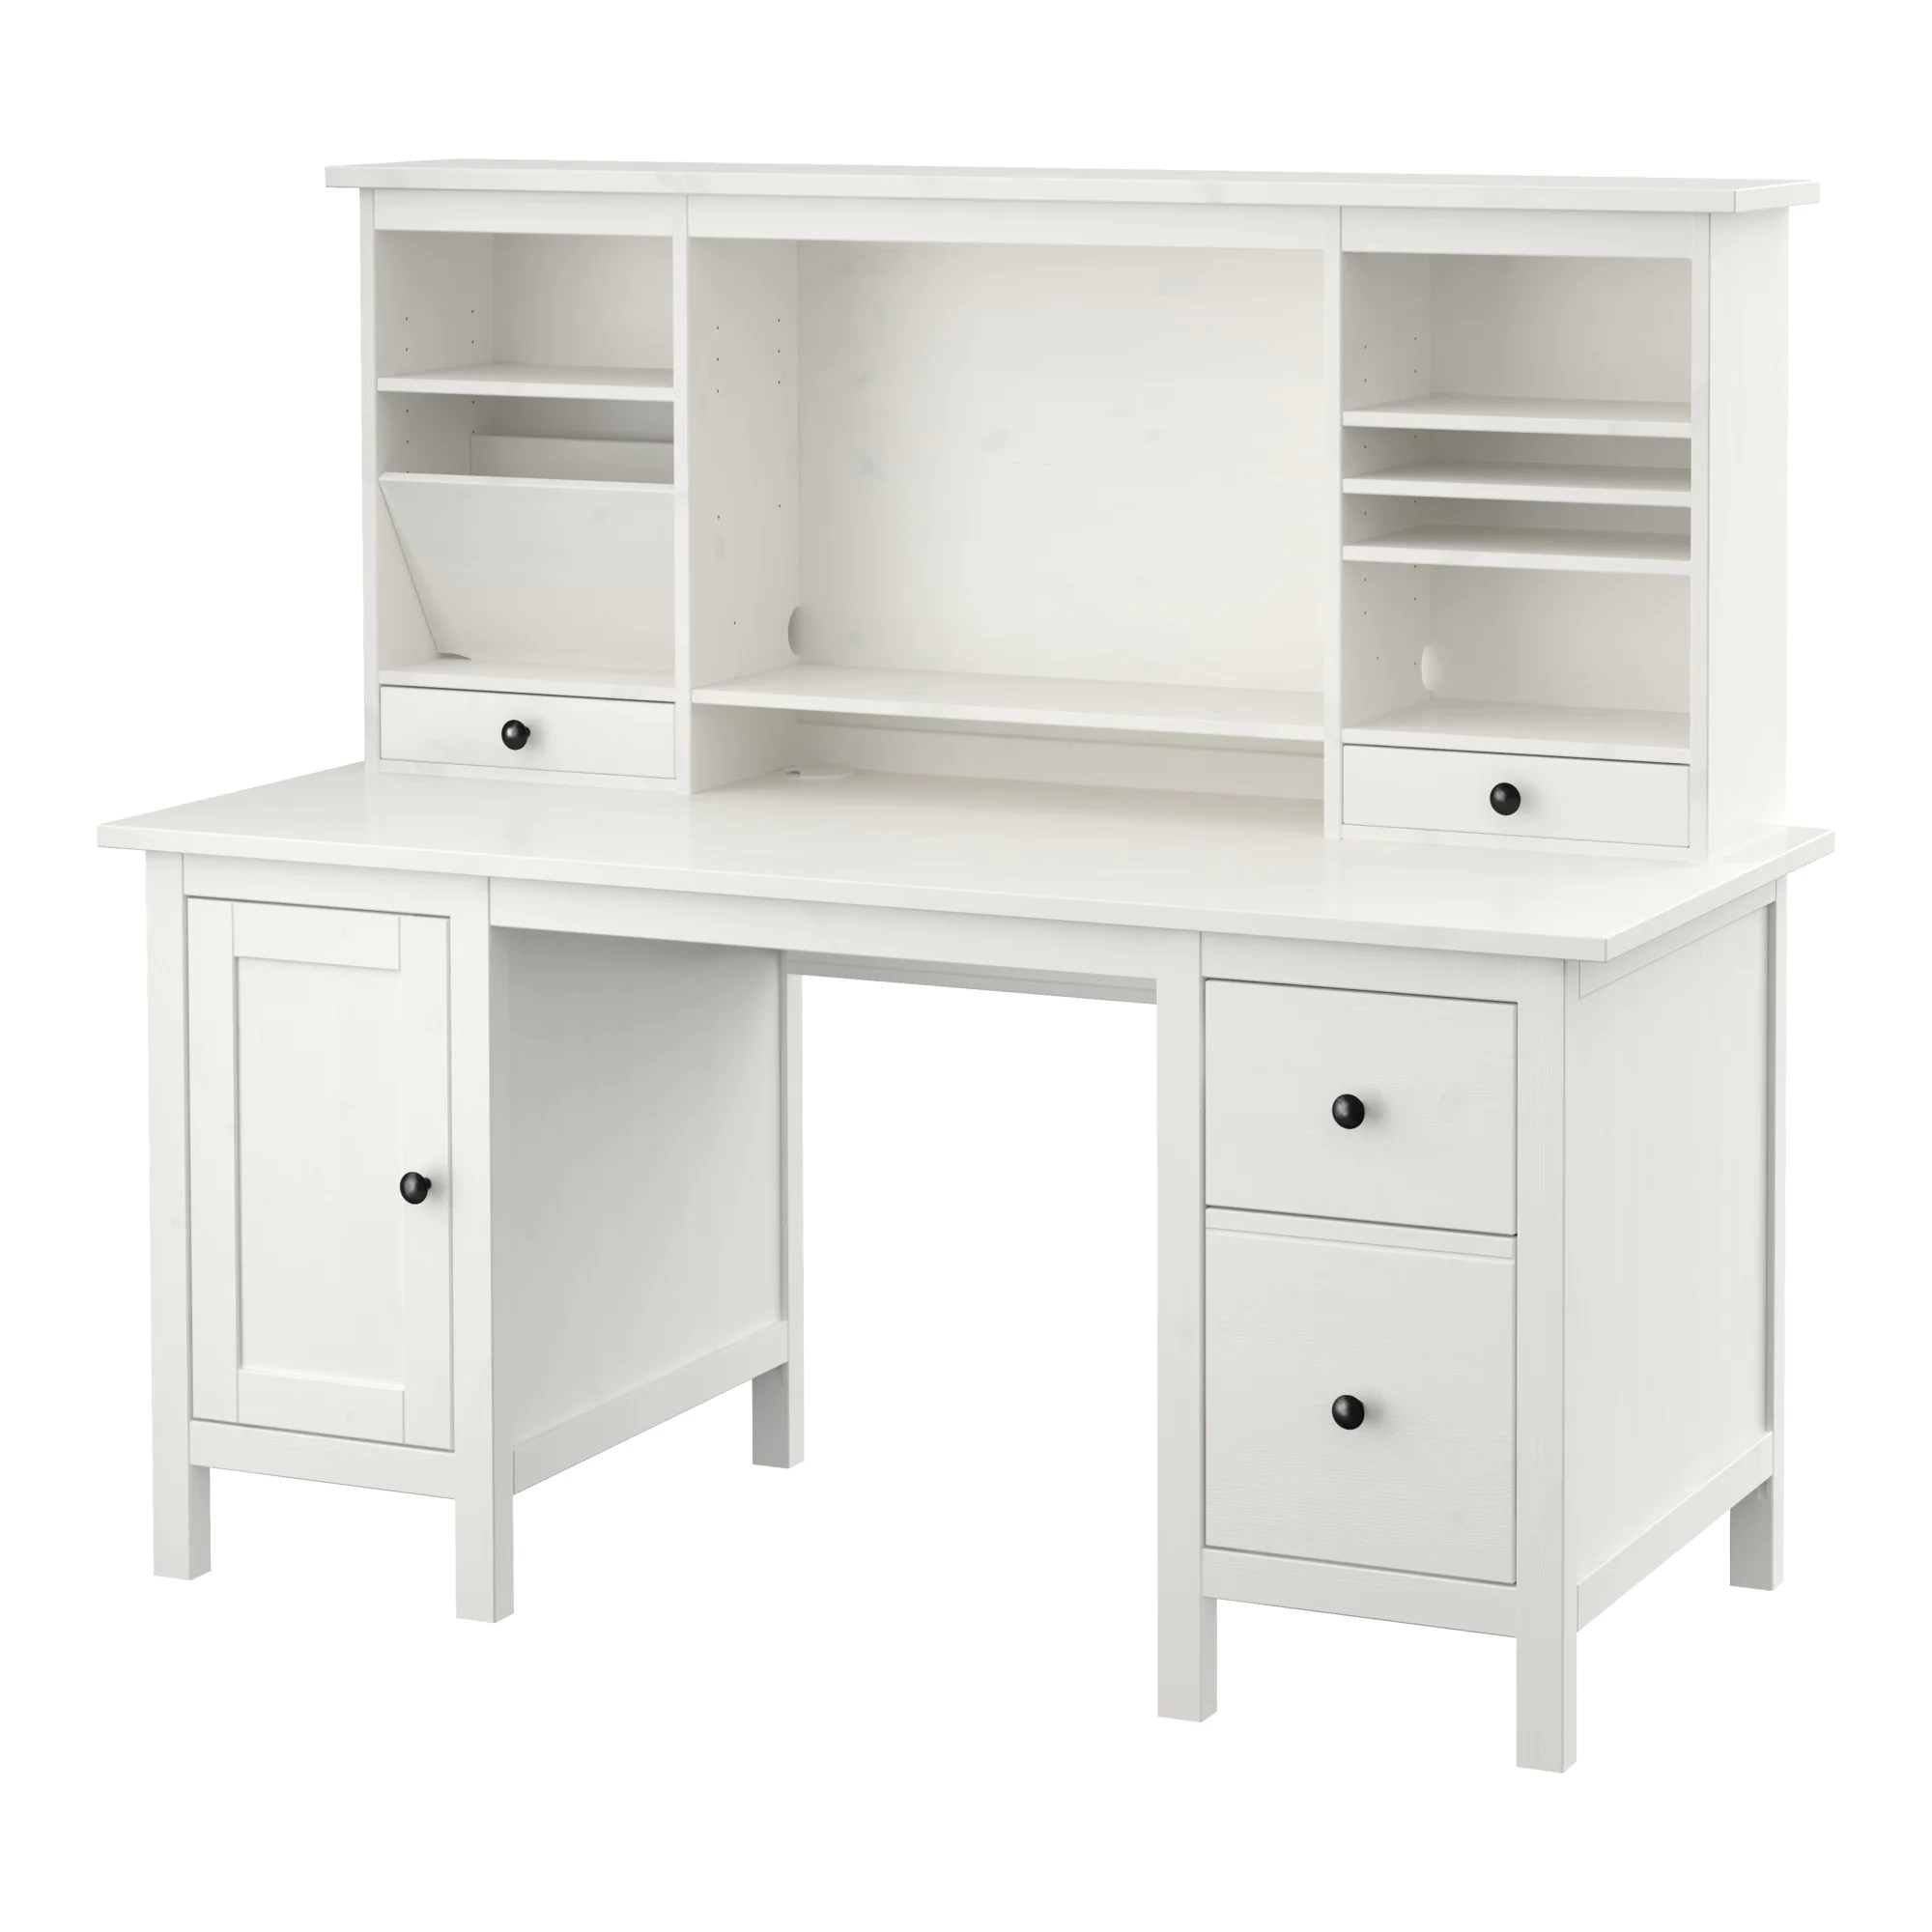 Ikea Table Hemnes Desk With Add On Unit White Stain